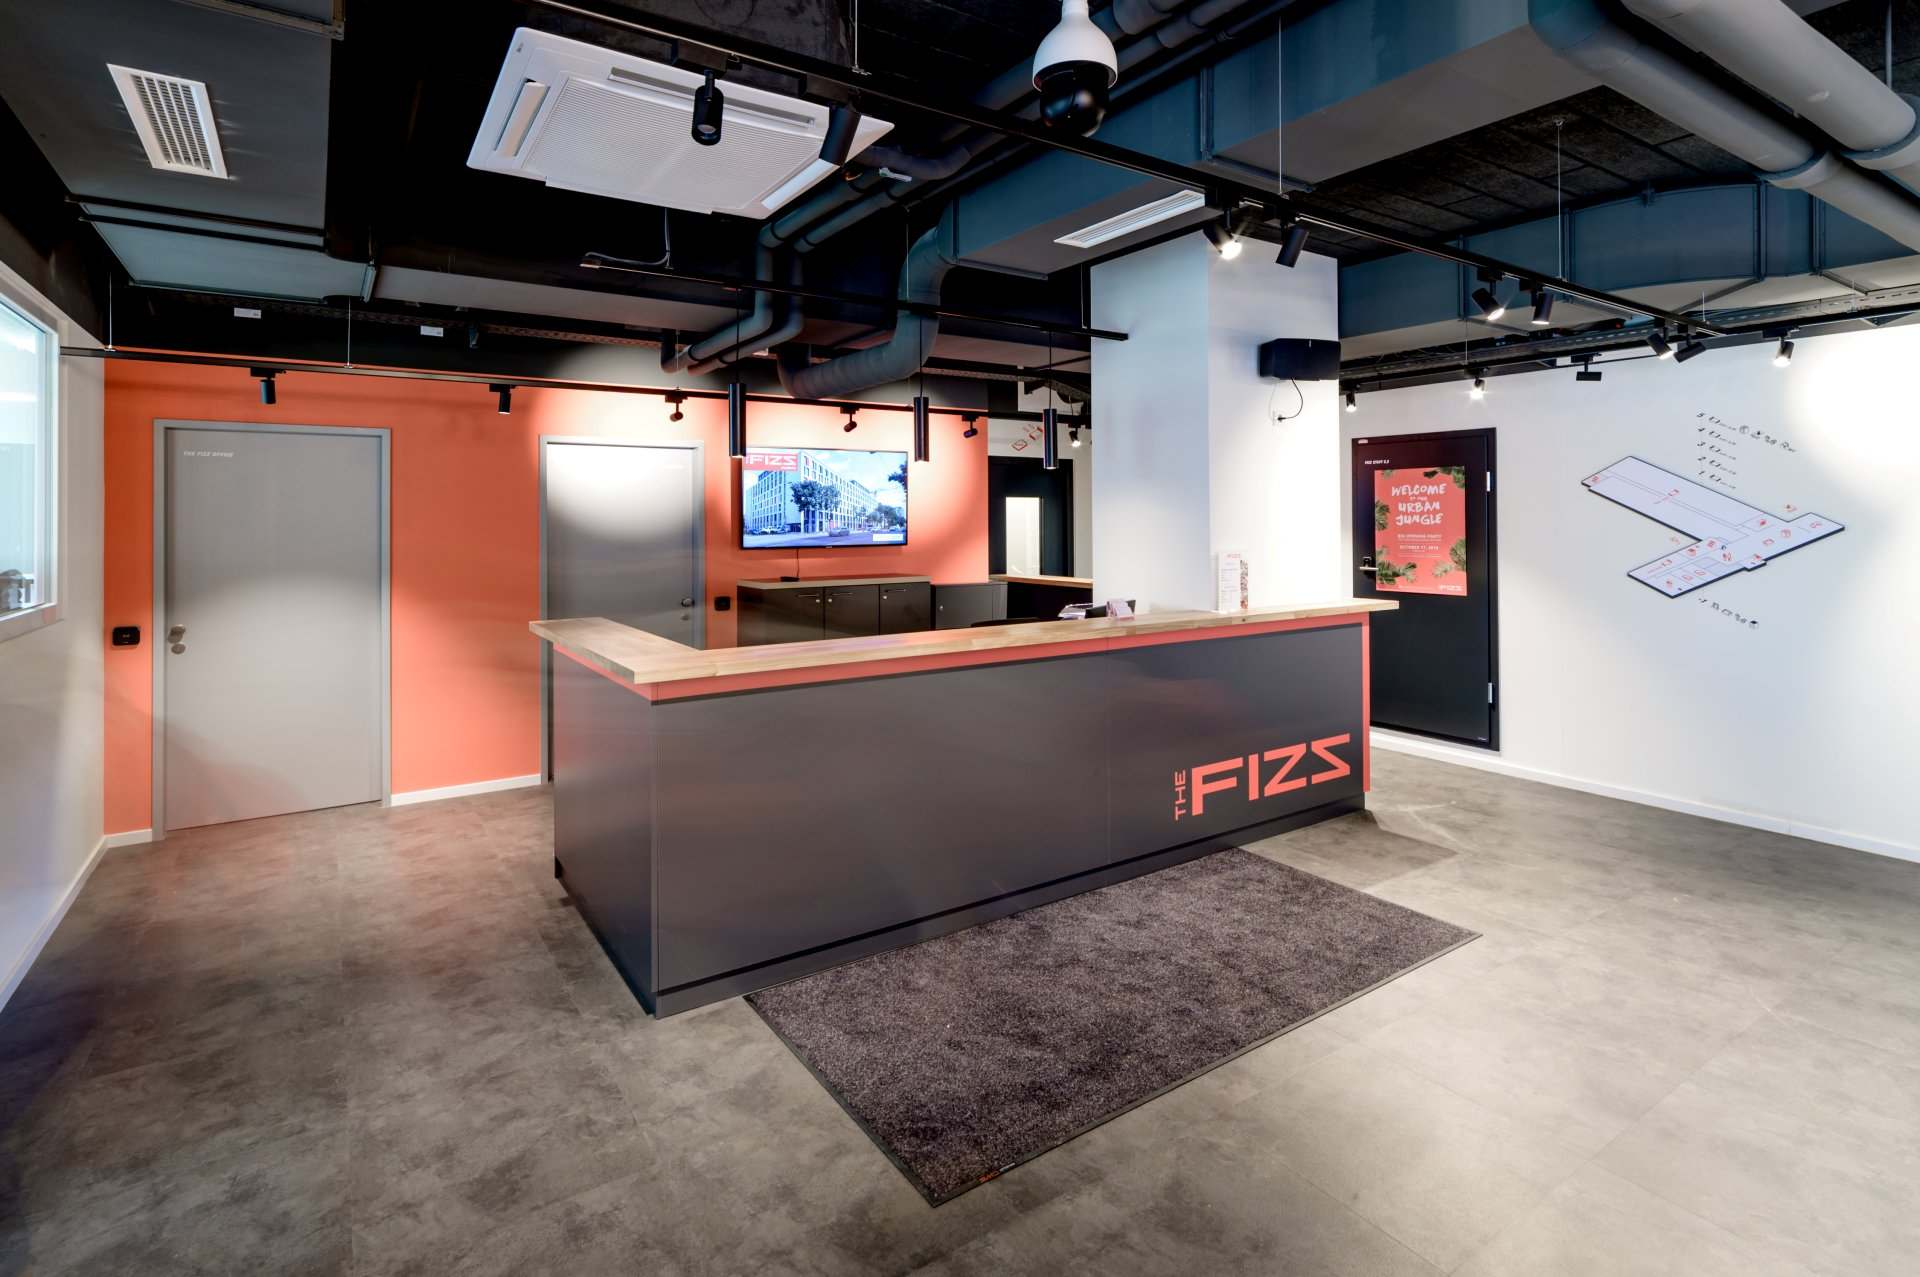 Entrance and reception at THE FIZZ Vienna Main Station Student Residence